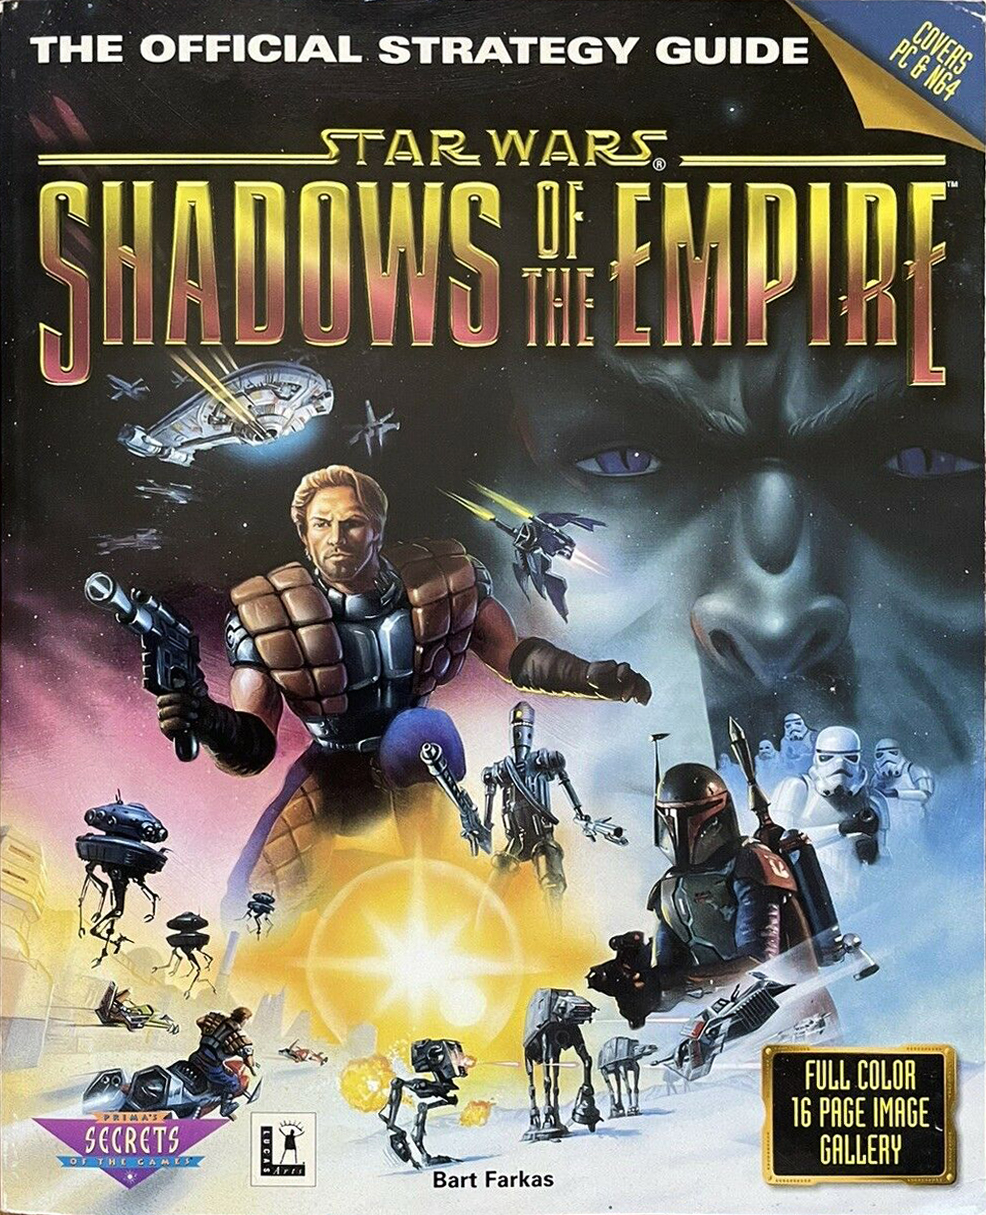 Star Wars: Shadows of the Empire: The Official Strategy Guide